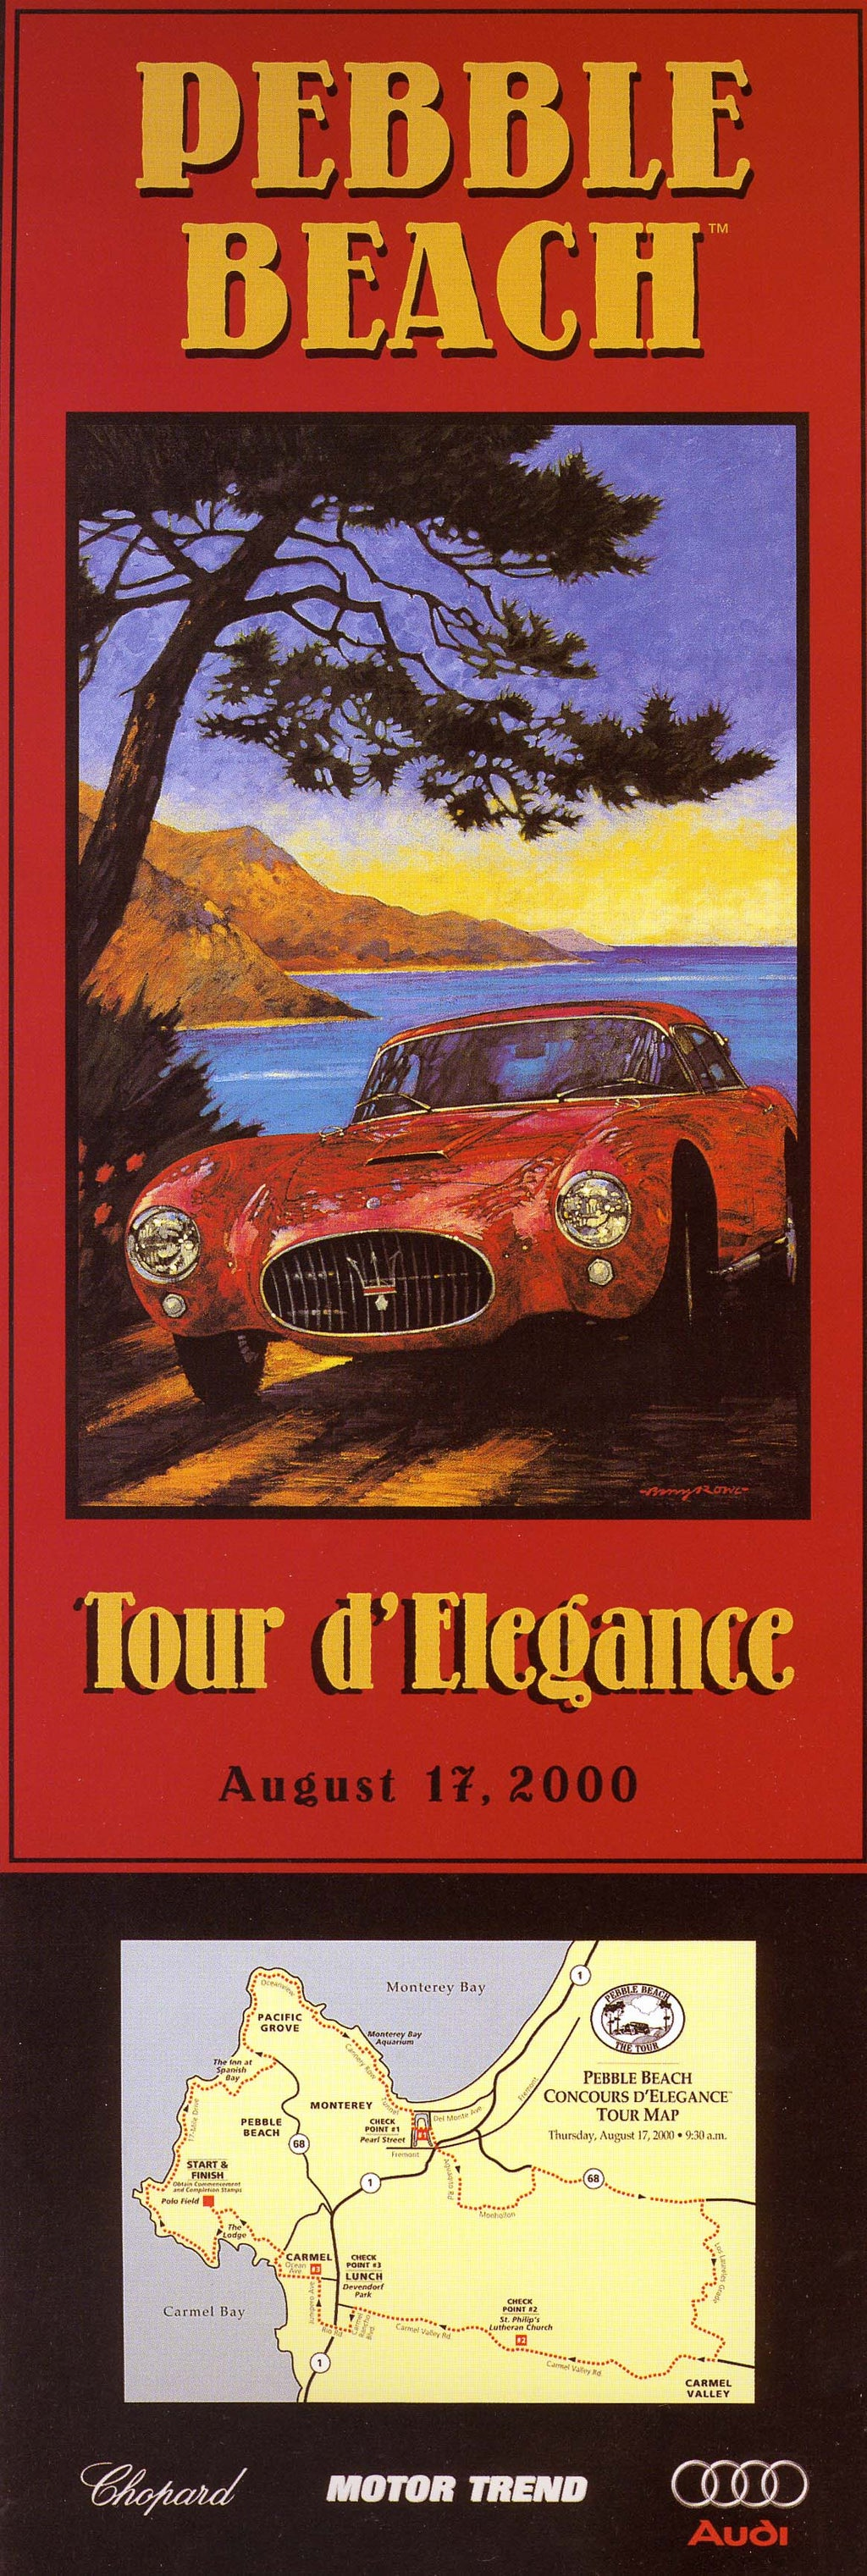 2000 Pebble Beach Tour d'Elegance Poster